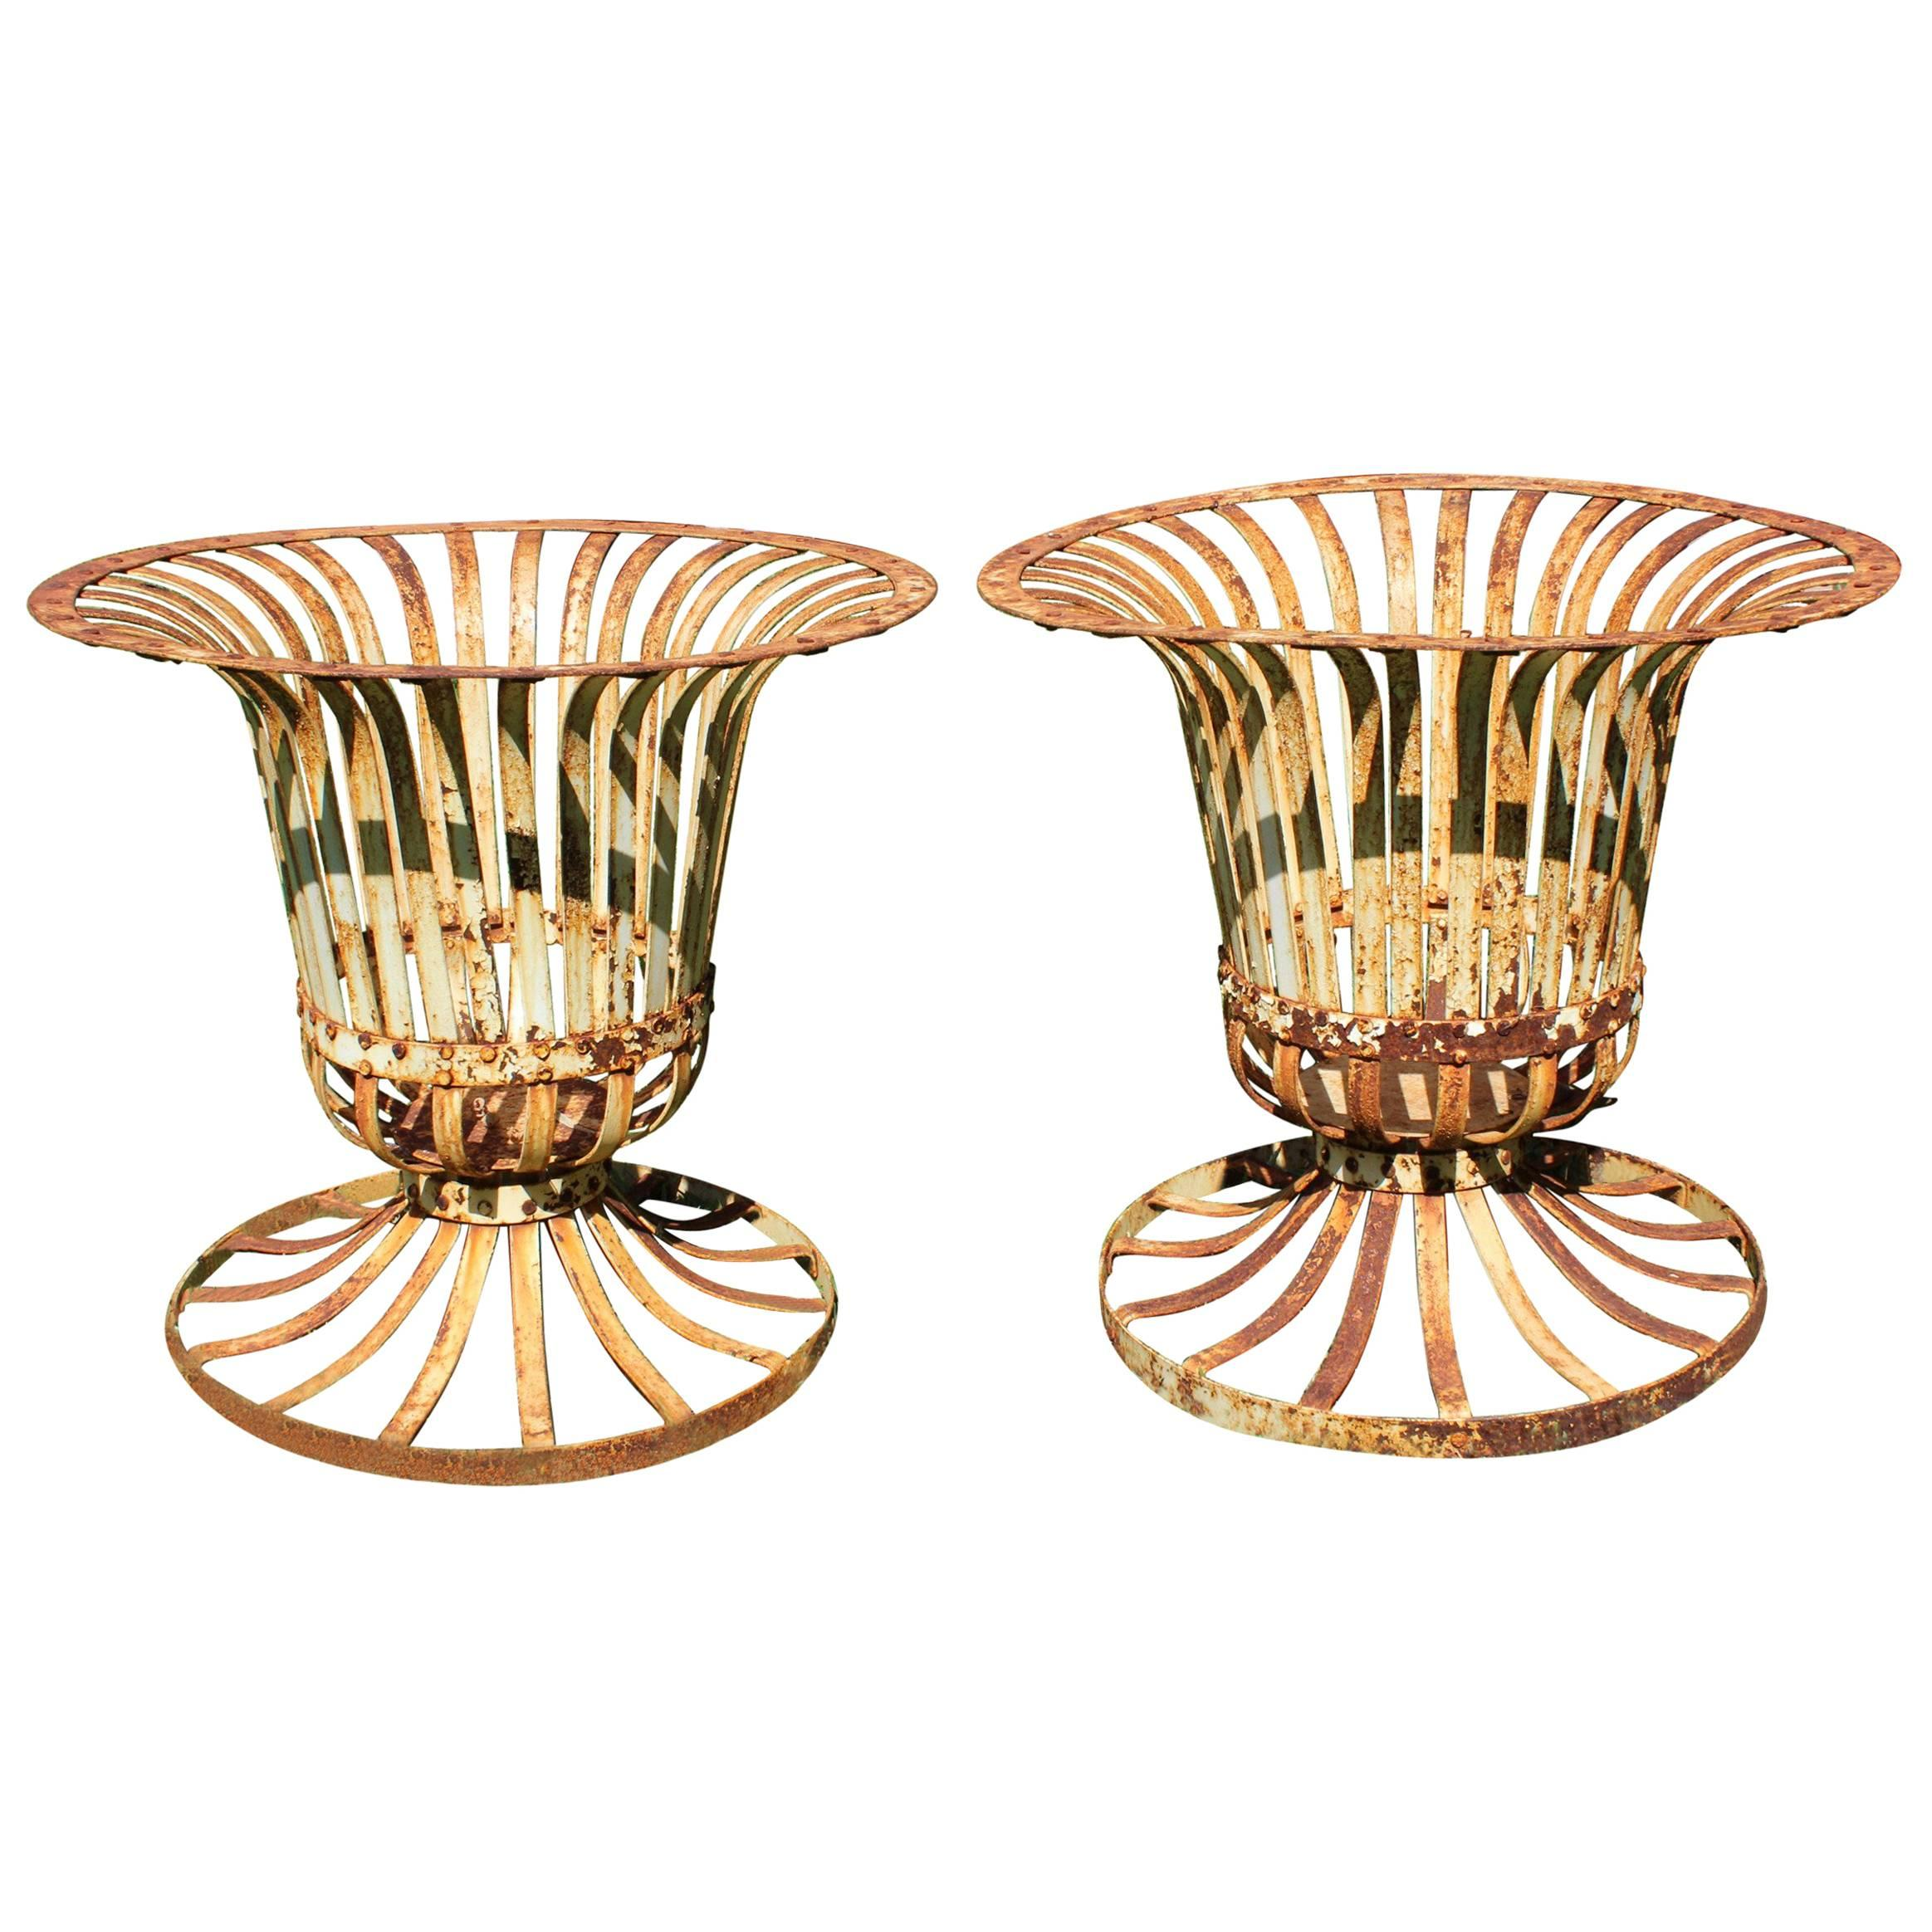 Pair of French Style Classical Wrought Iron Urns